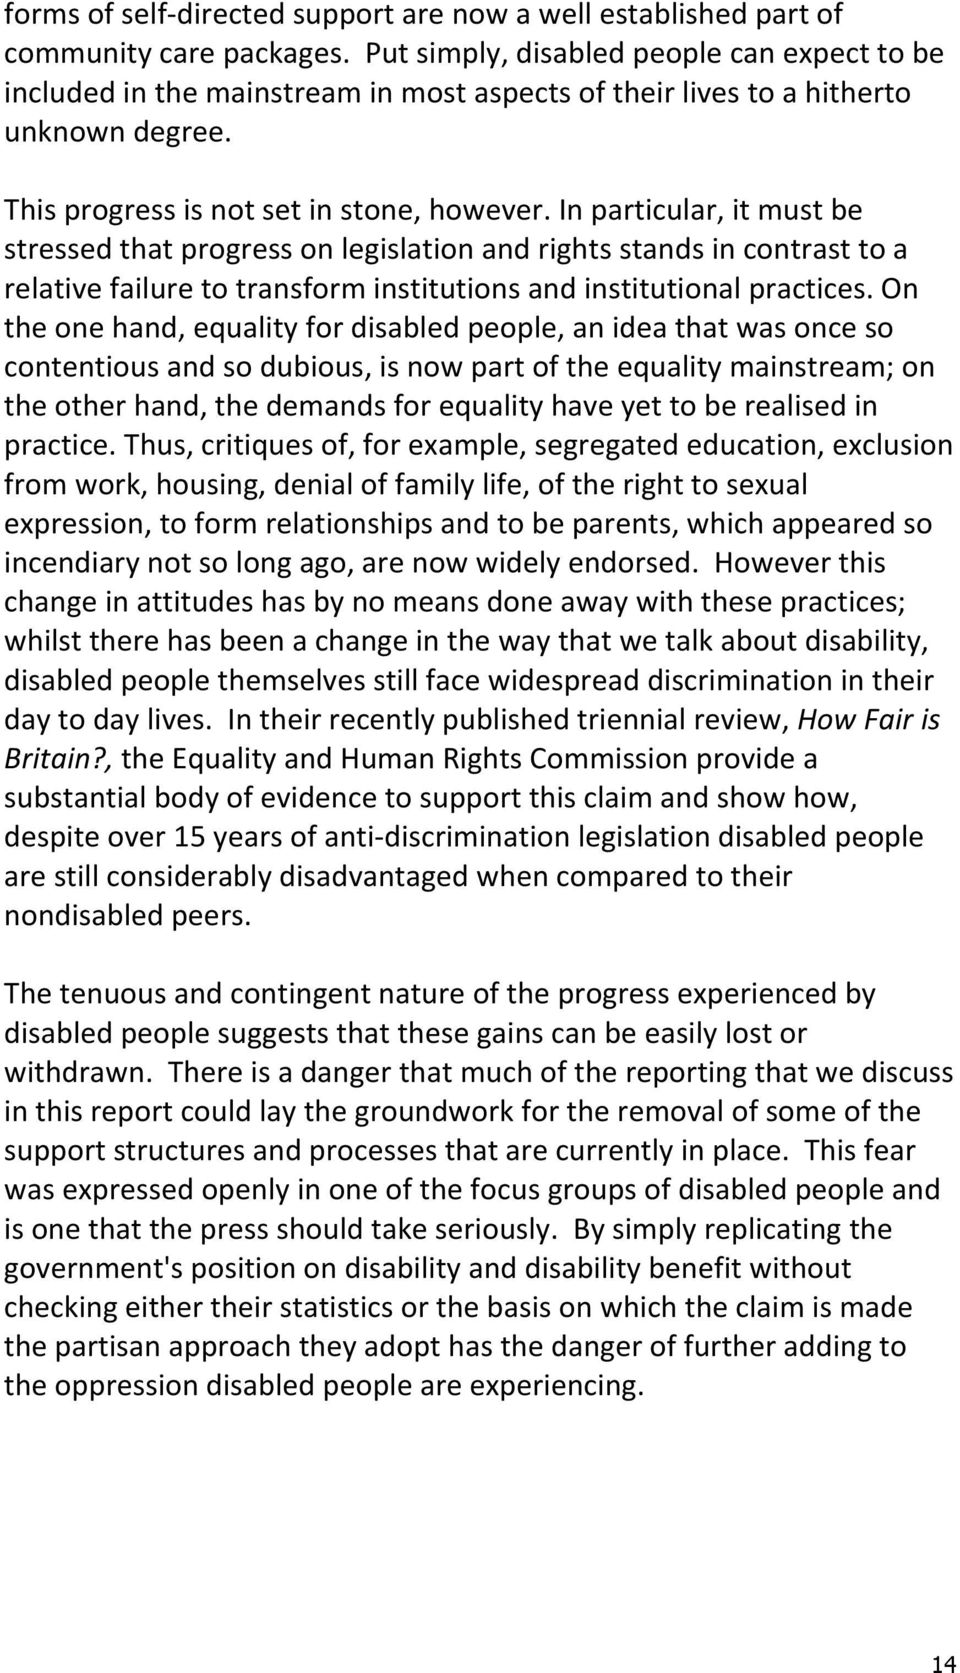 on theonehand,equalityfordisabledpeople,anideathatwasonceso contentiousandsodubious,isnowpartoftheequalitymainstream;on theotherhand,thedemandsforequalityhaveyettoberealisedin practice.